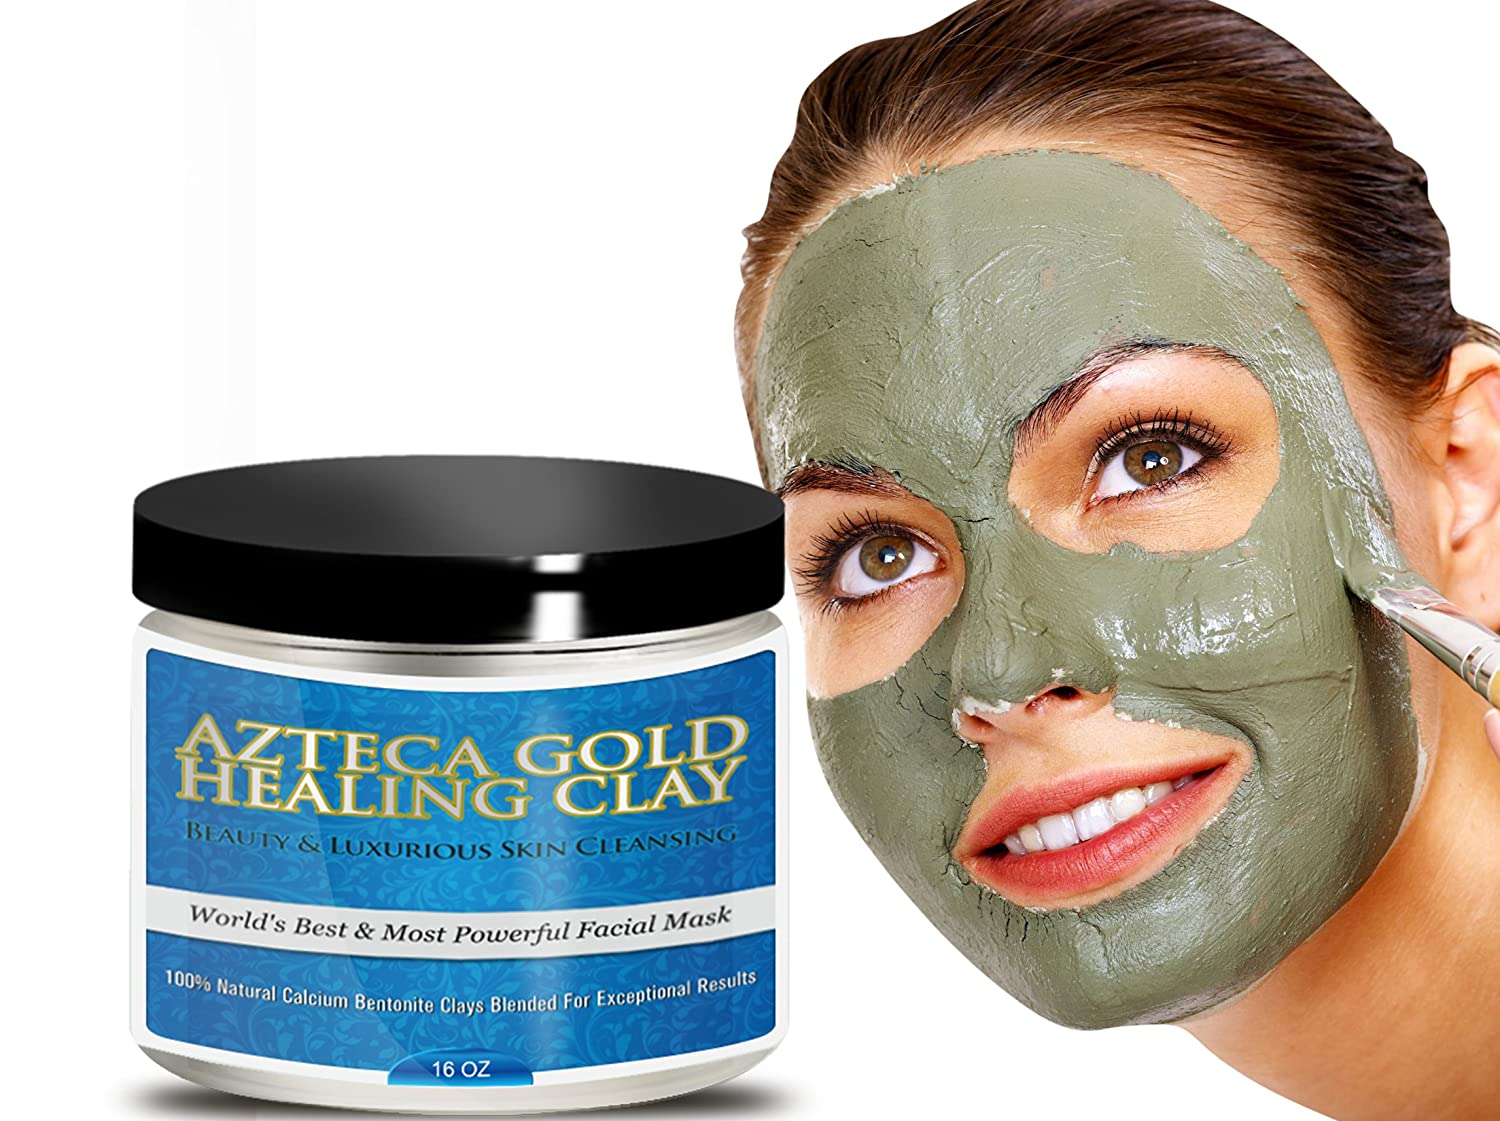 This 100 Natural Clay Face Mask Is Amazons Top-Selling Skin Care Product recommendations